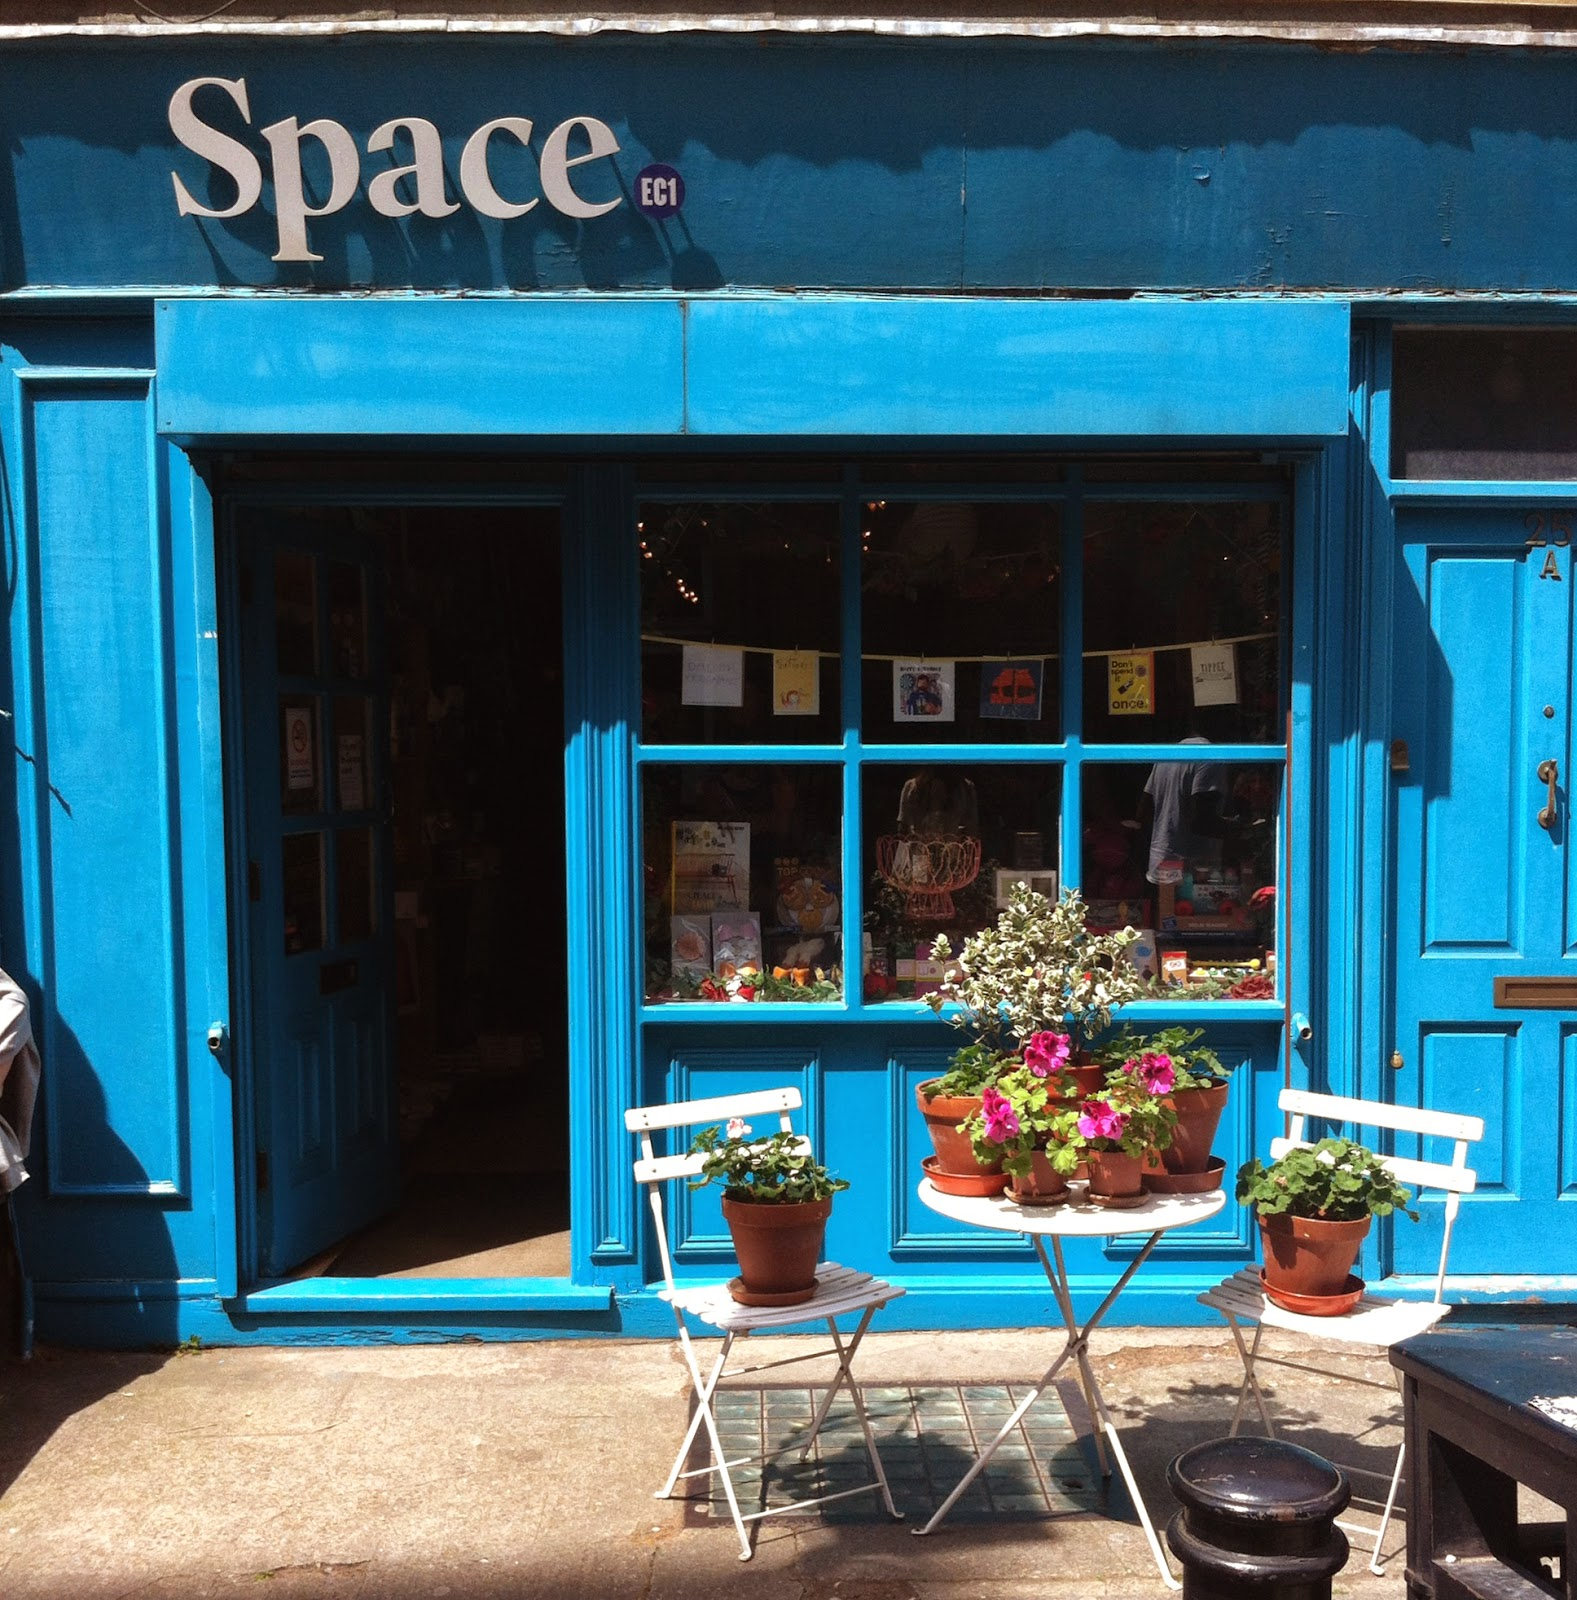 Space Shop front on Exmouth Market